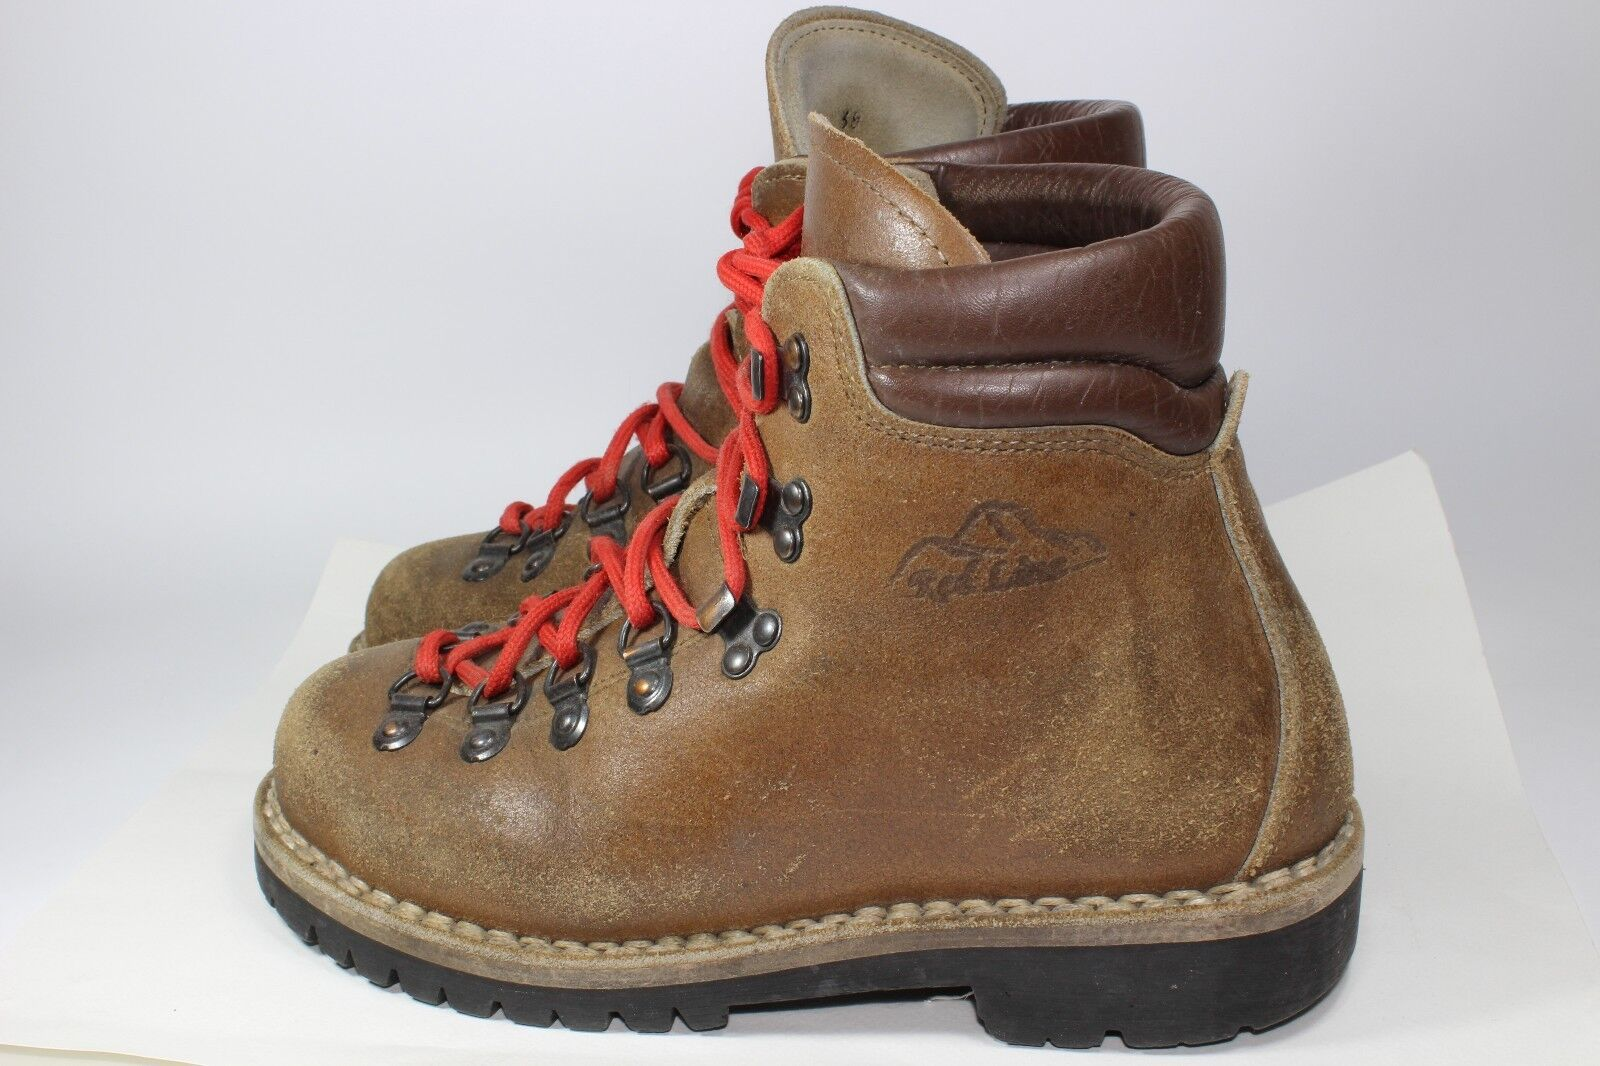 Alpin Hiking Mountaineering Leather Boots Vintage Rare Red Line Euro size 38